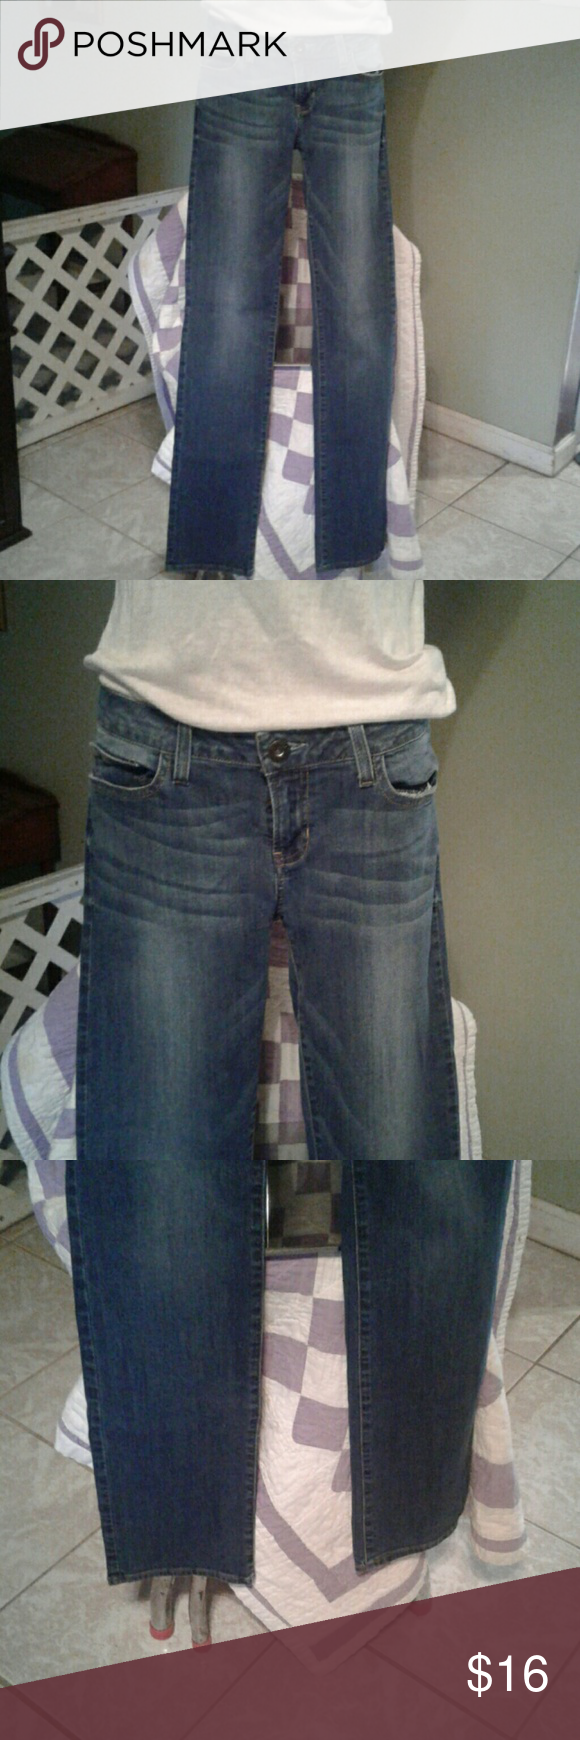 Guess jeans Guess jeans with a material content of 98% cotton 2% spandex. The Measurements are approximately 43 inches long 33 inches in cm and 8 inches rise. Guess  Jeans Straight Leg